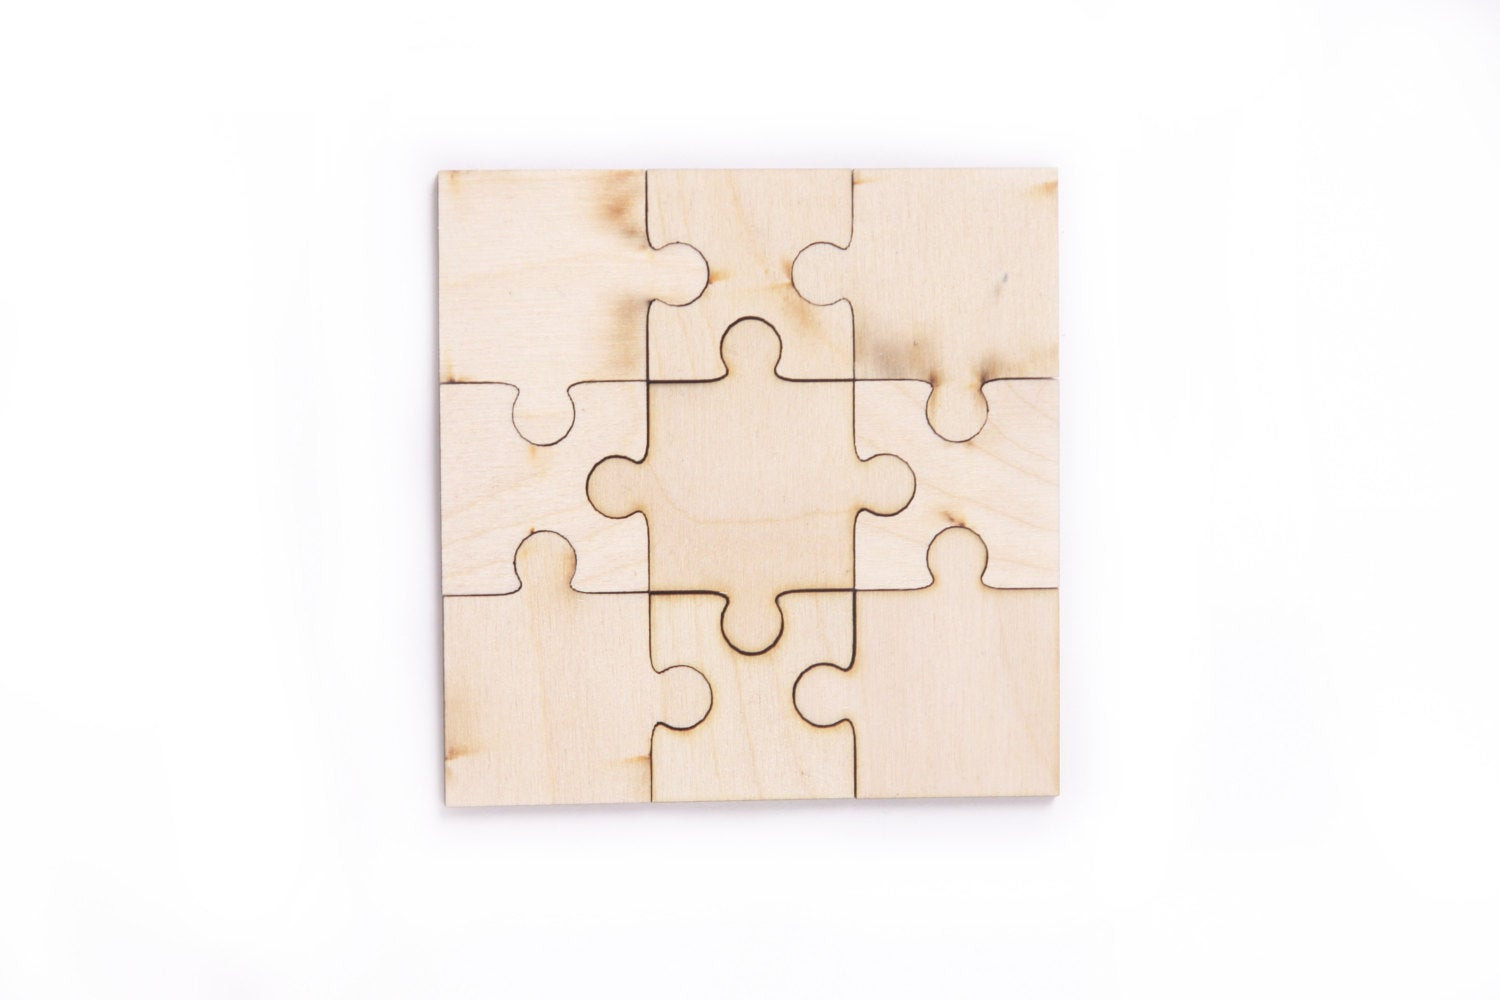 Best ideas about DIY Wood Puzzle . Save or Pin wooden puzzle DIY blank puzzle wooden toy t ideas Now.